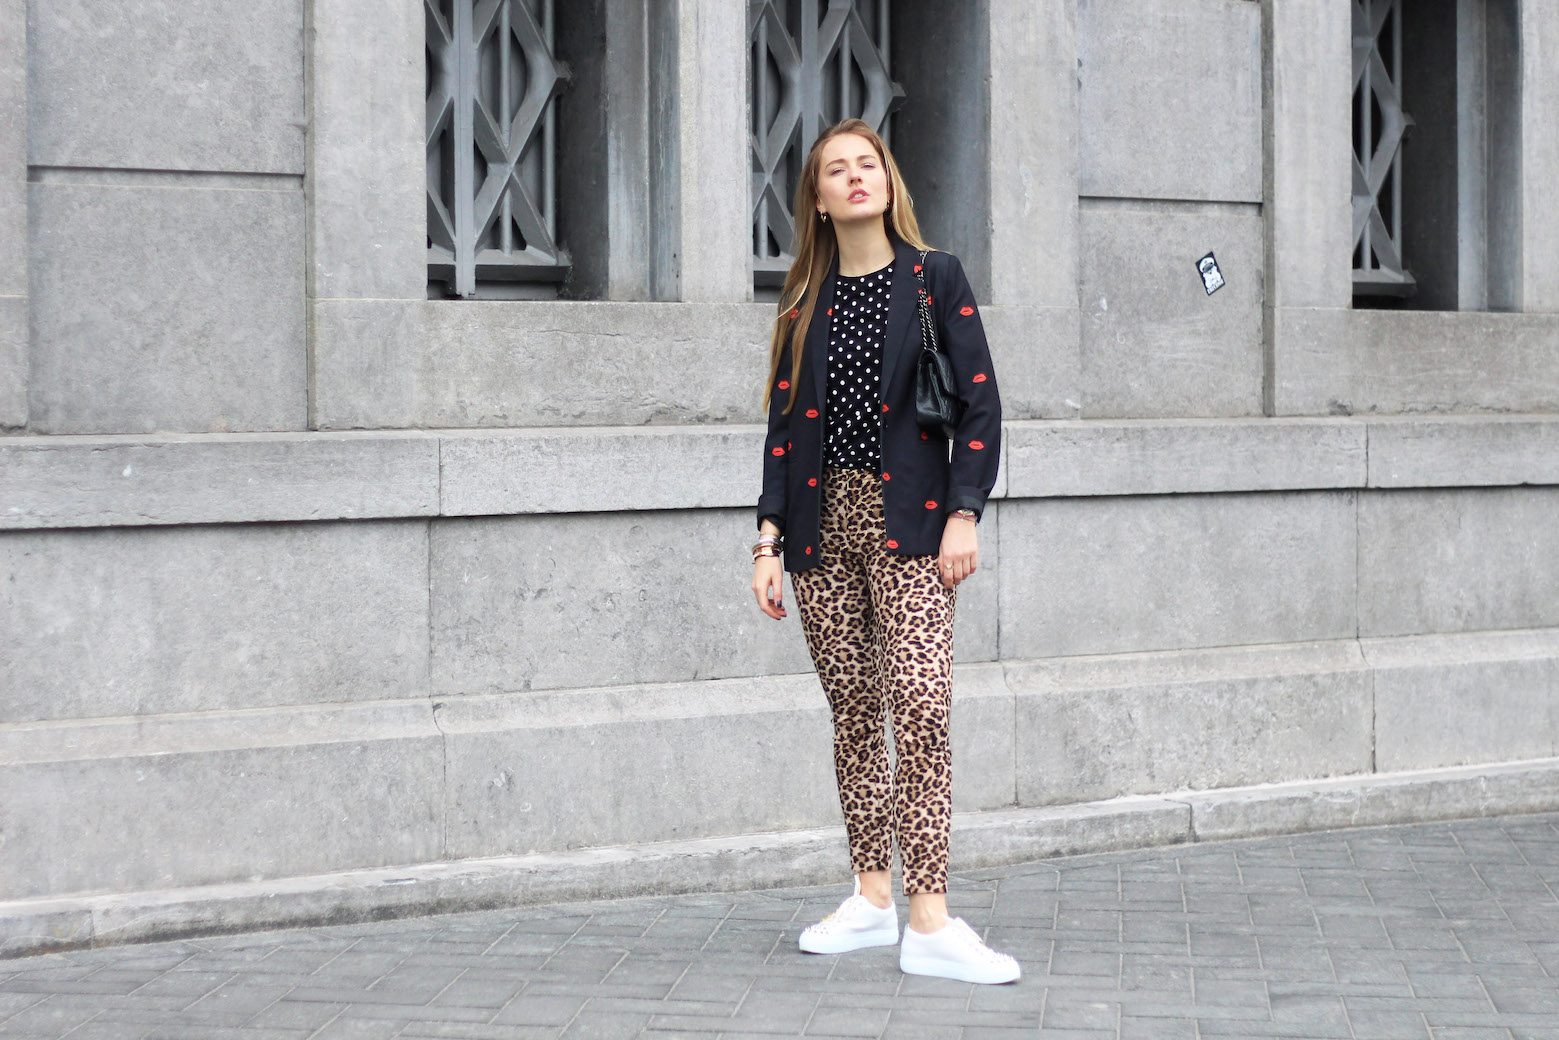 floortjeloves, these steps will make you a more positive person, colourful rebel, daylliance, white sneakers, agl, chanel, chanel bag, chanel classic, louis vuitton, louis vuitton earrings, zara, leopard, leopard print